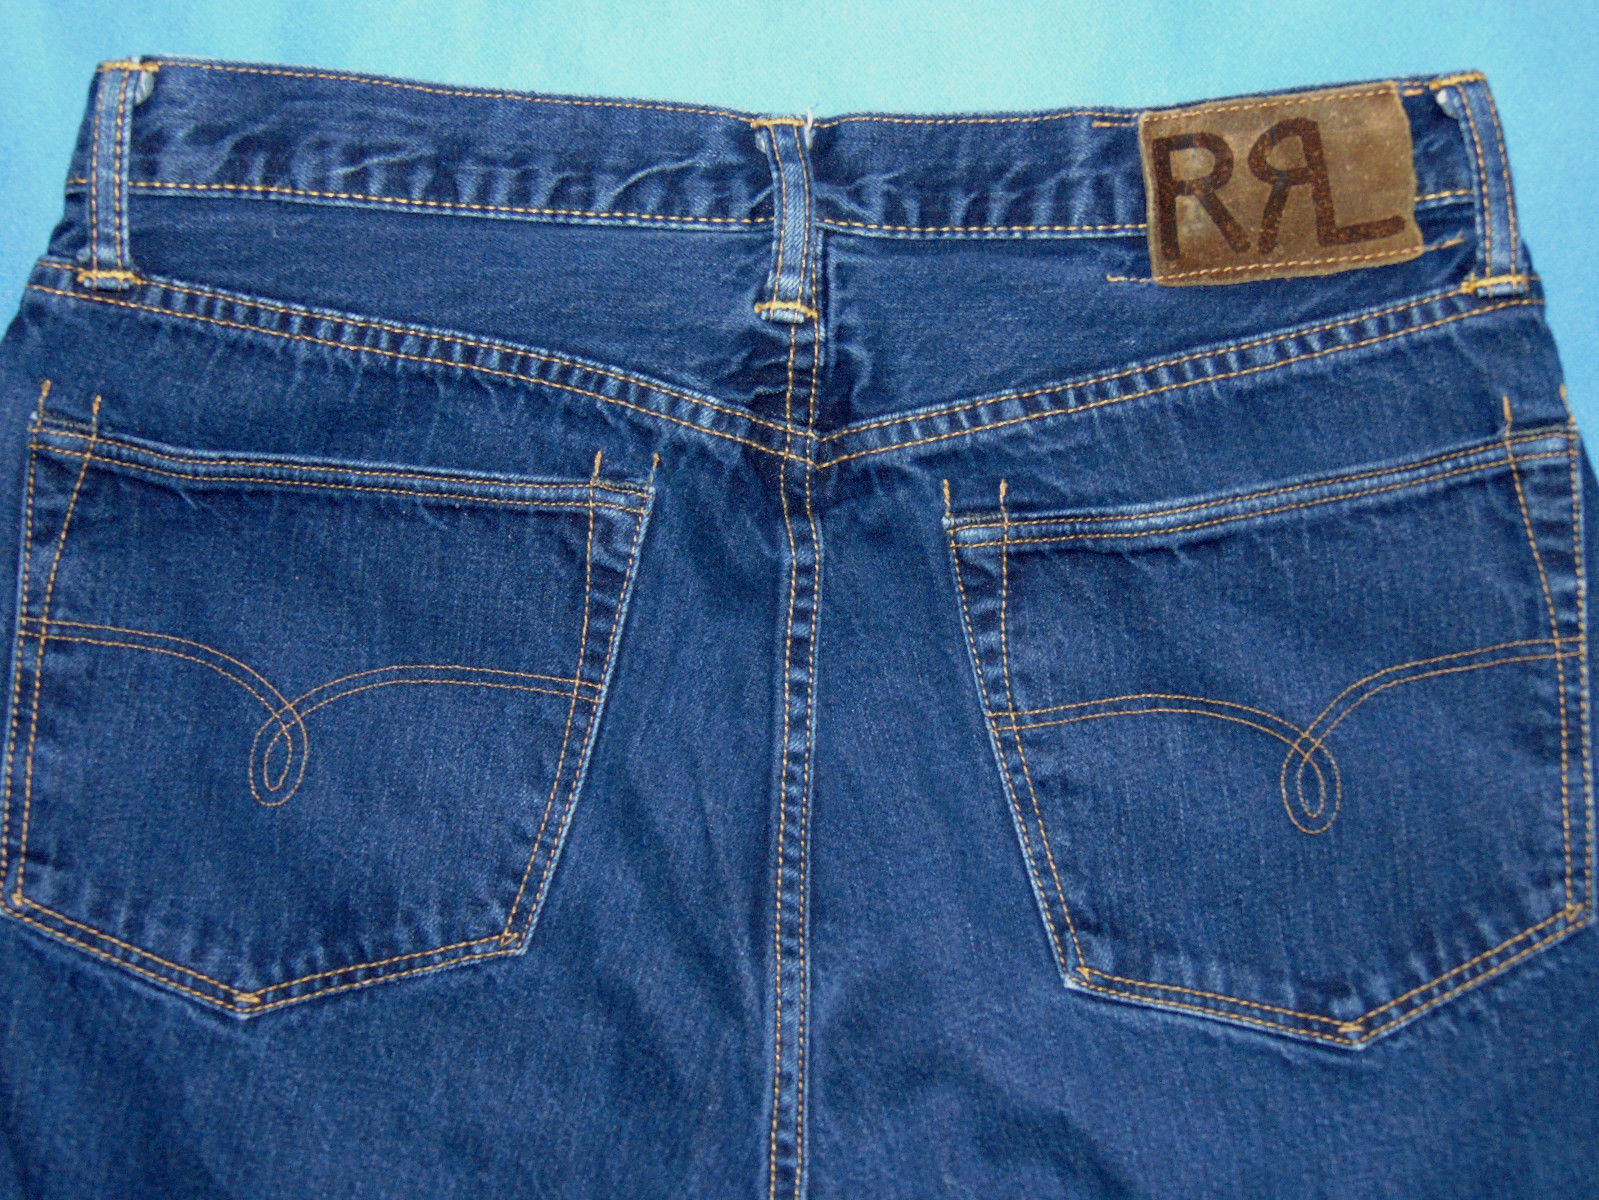 VINTAGE  RRL  STRAIGHT LEG JEANS 100% COTTON  TAGGED 34  ACTUAL 32X32 MADE IN US